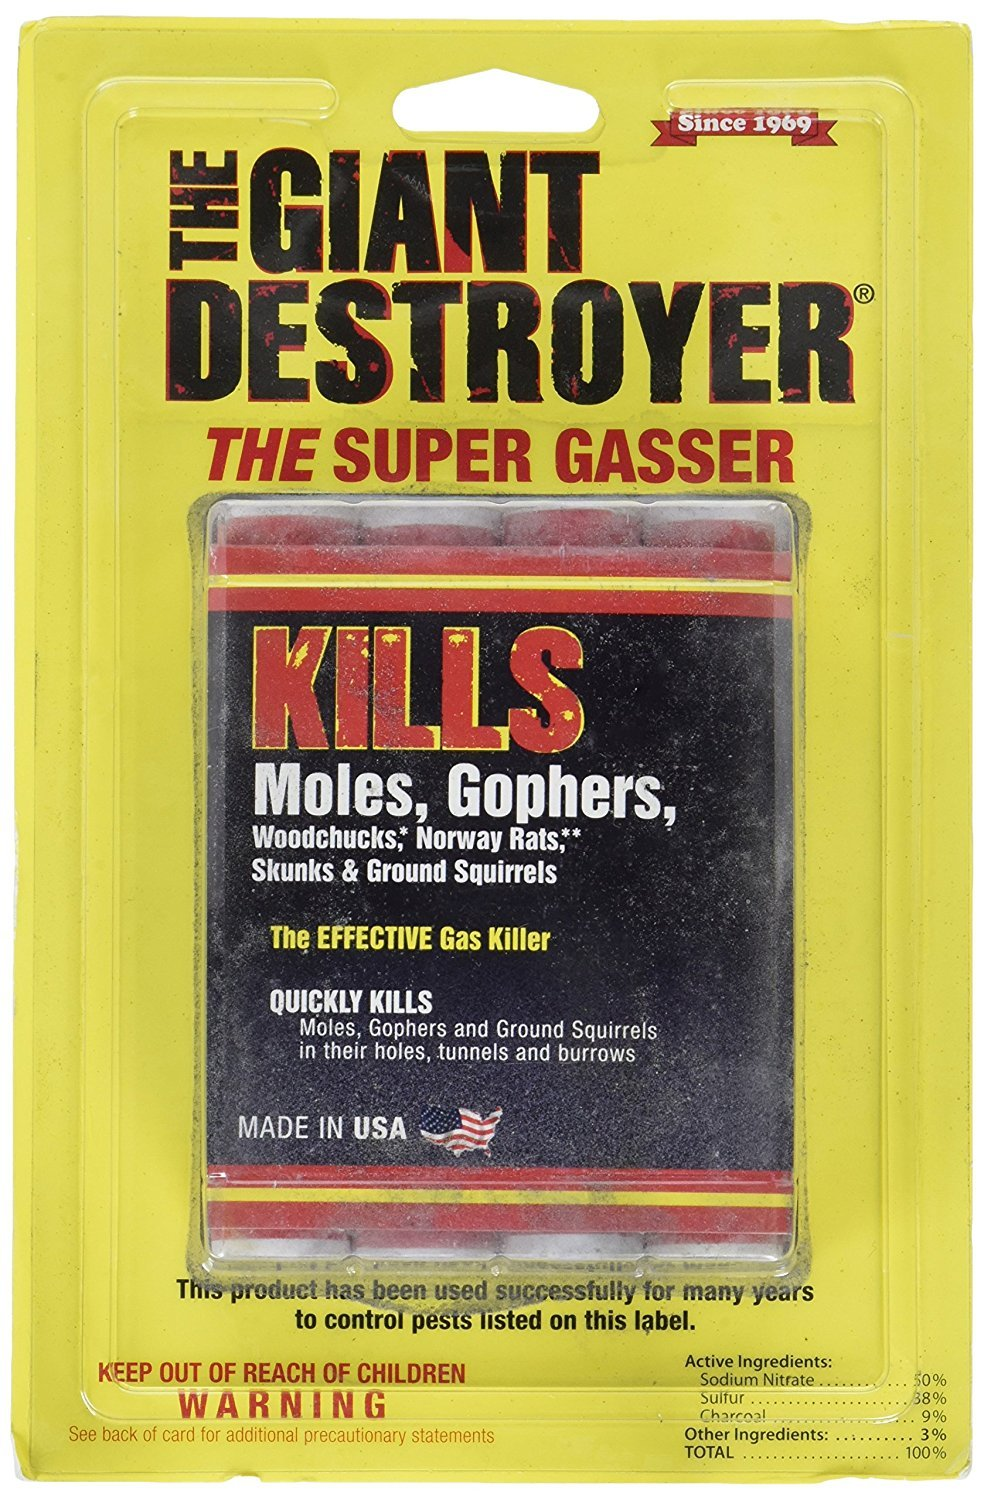 The Giant Destroyer (GAS KILLER) (12/4PK TOTAL) 48 kills Moles, Gophers, Woodchucks, Norway Rats, Skunks, Ground Squirrels in their Holes, Tunnels, Burrows. NO dealing w/ dead pest, better than traps by The Giant Destroyer